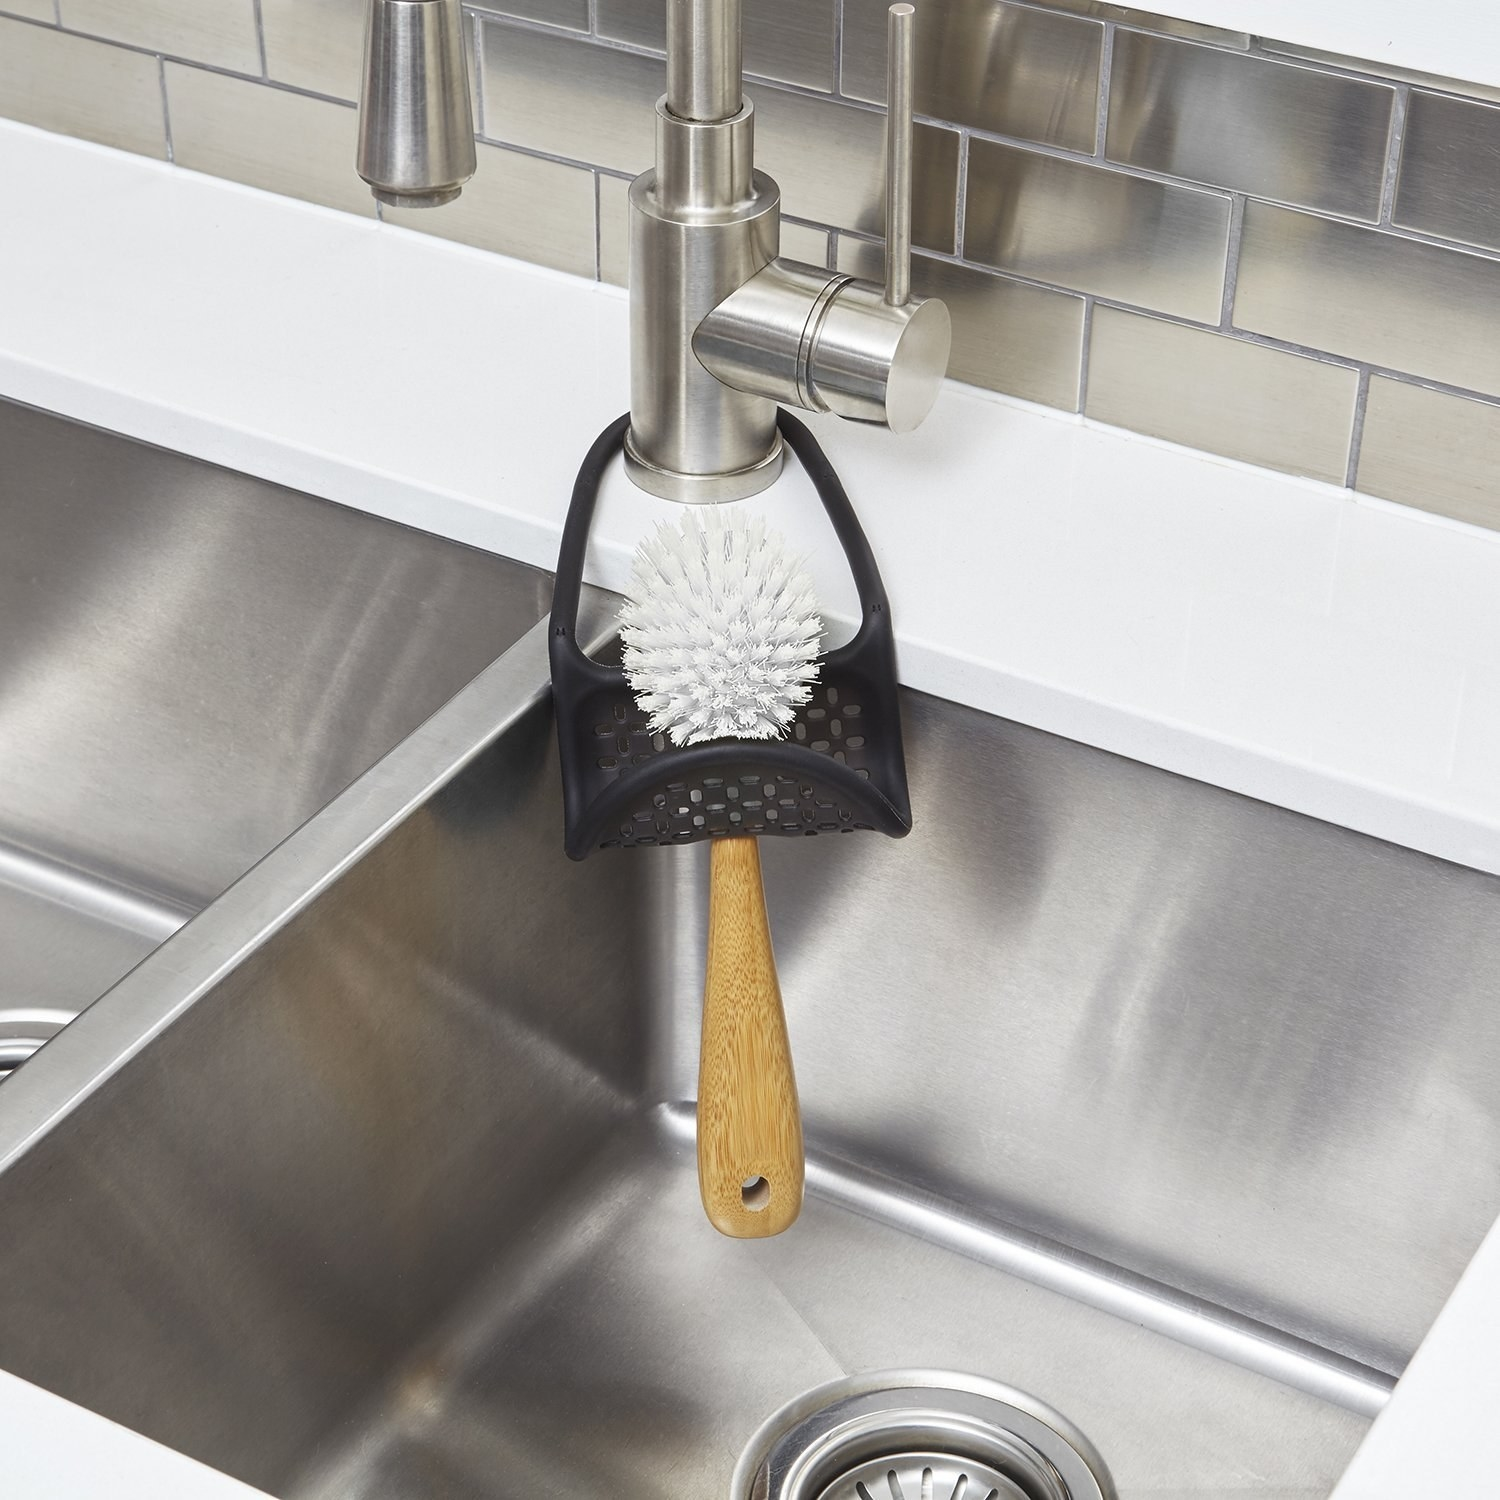 the sling-like caddy around the kitchen sink faucet holding a dish brush